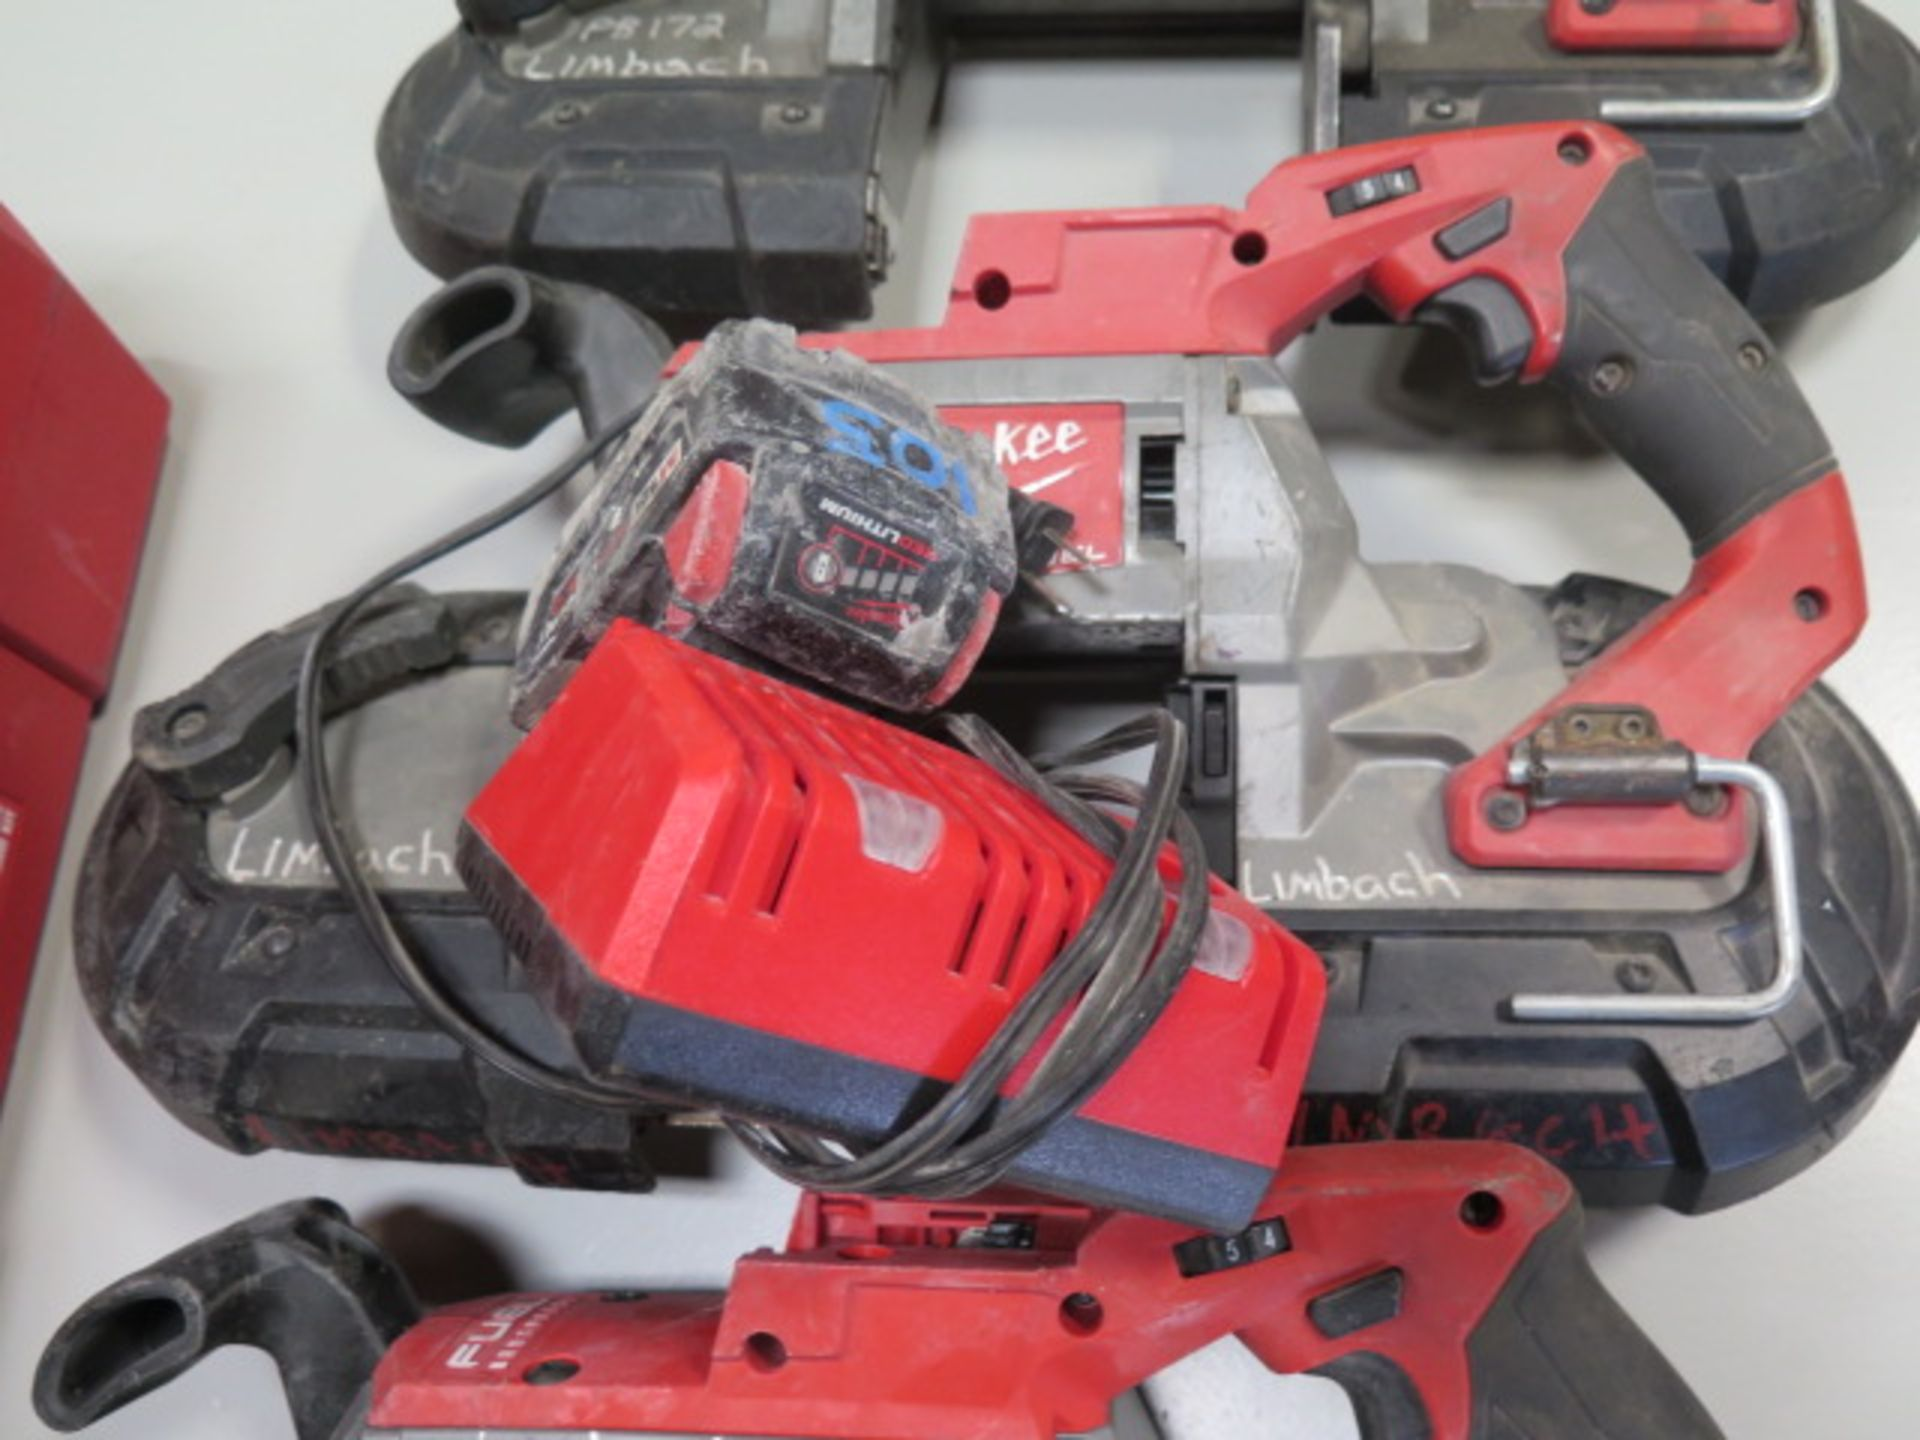 Milwaukee 18 Volt Portable Band Saws (3) (SOLD AS-IS - NO WARRANTY) - Image 4 of 7